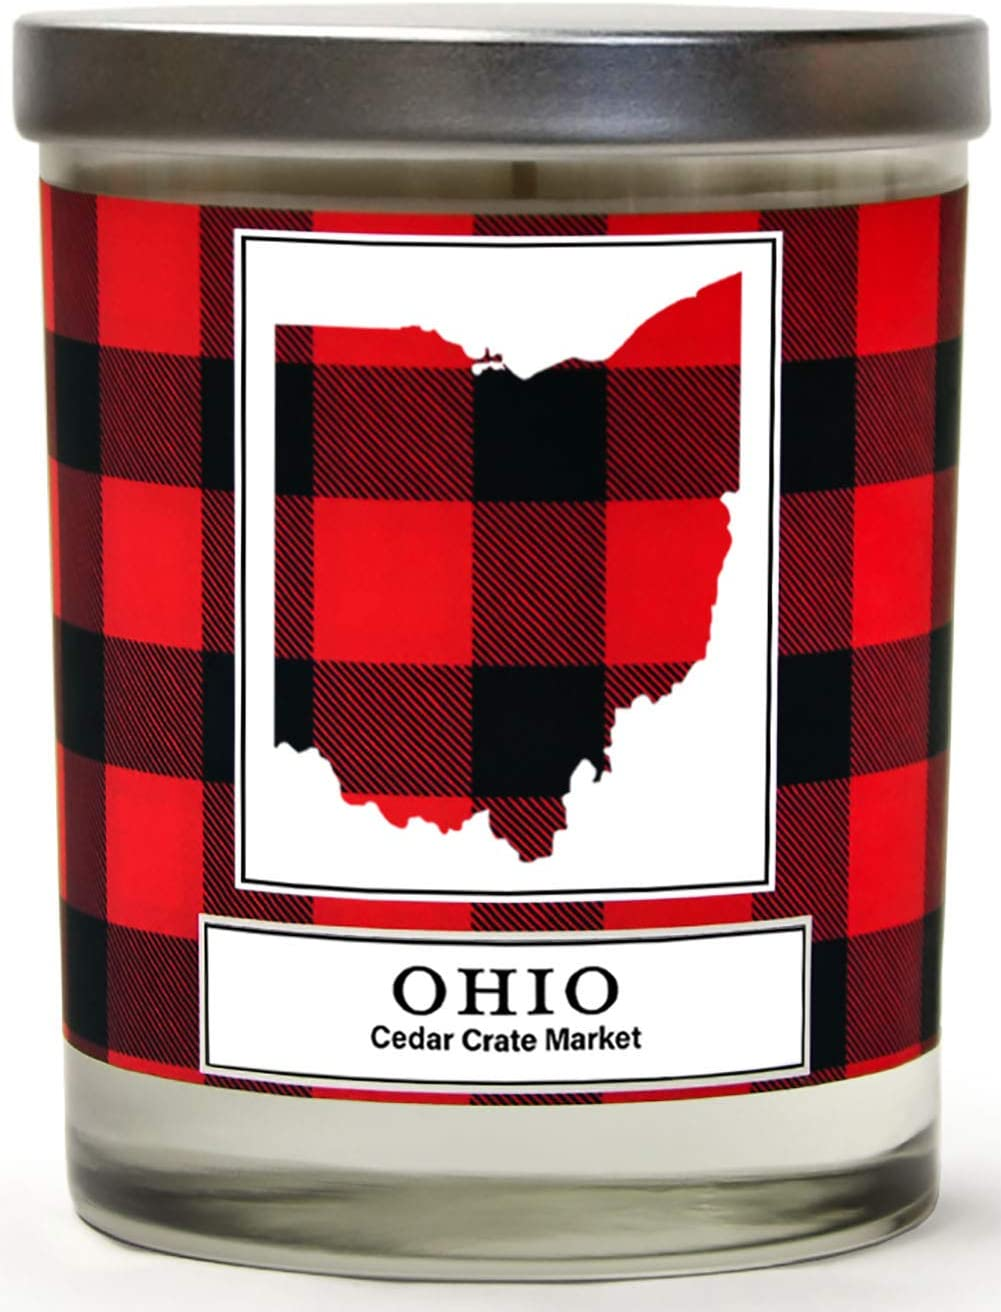 Ohio Buffalo Plaid Scented Soy Candle | Fraser Fir, Pine Needle, Cedarwood | 10 Oz. Glass Jar Candle | Made in The USA | Decorative Candles | Going Away Gifts for Friends | State Candles